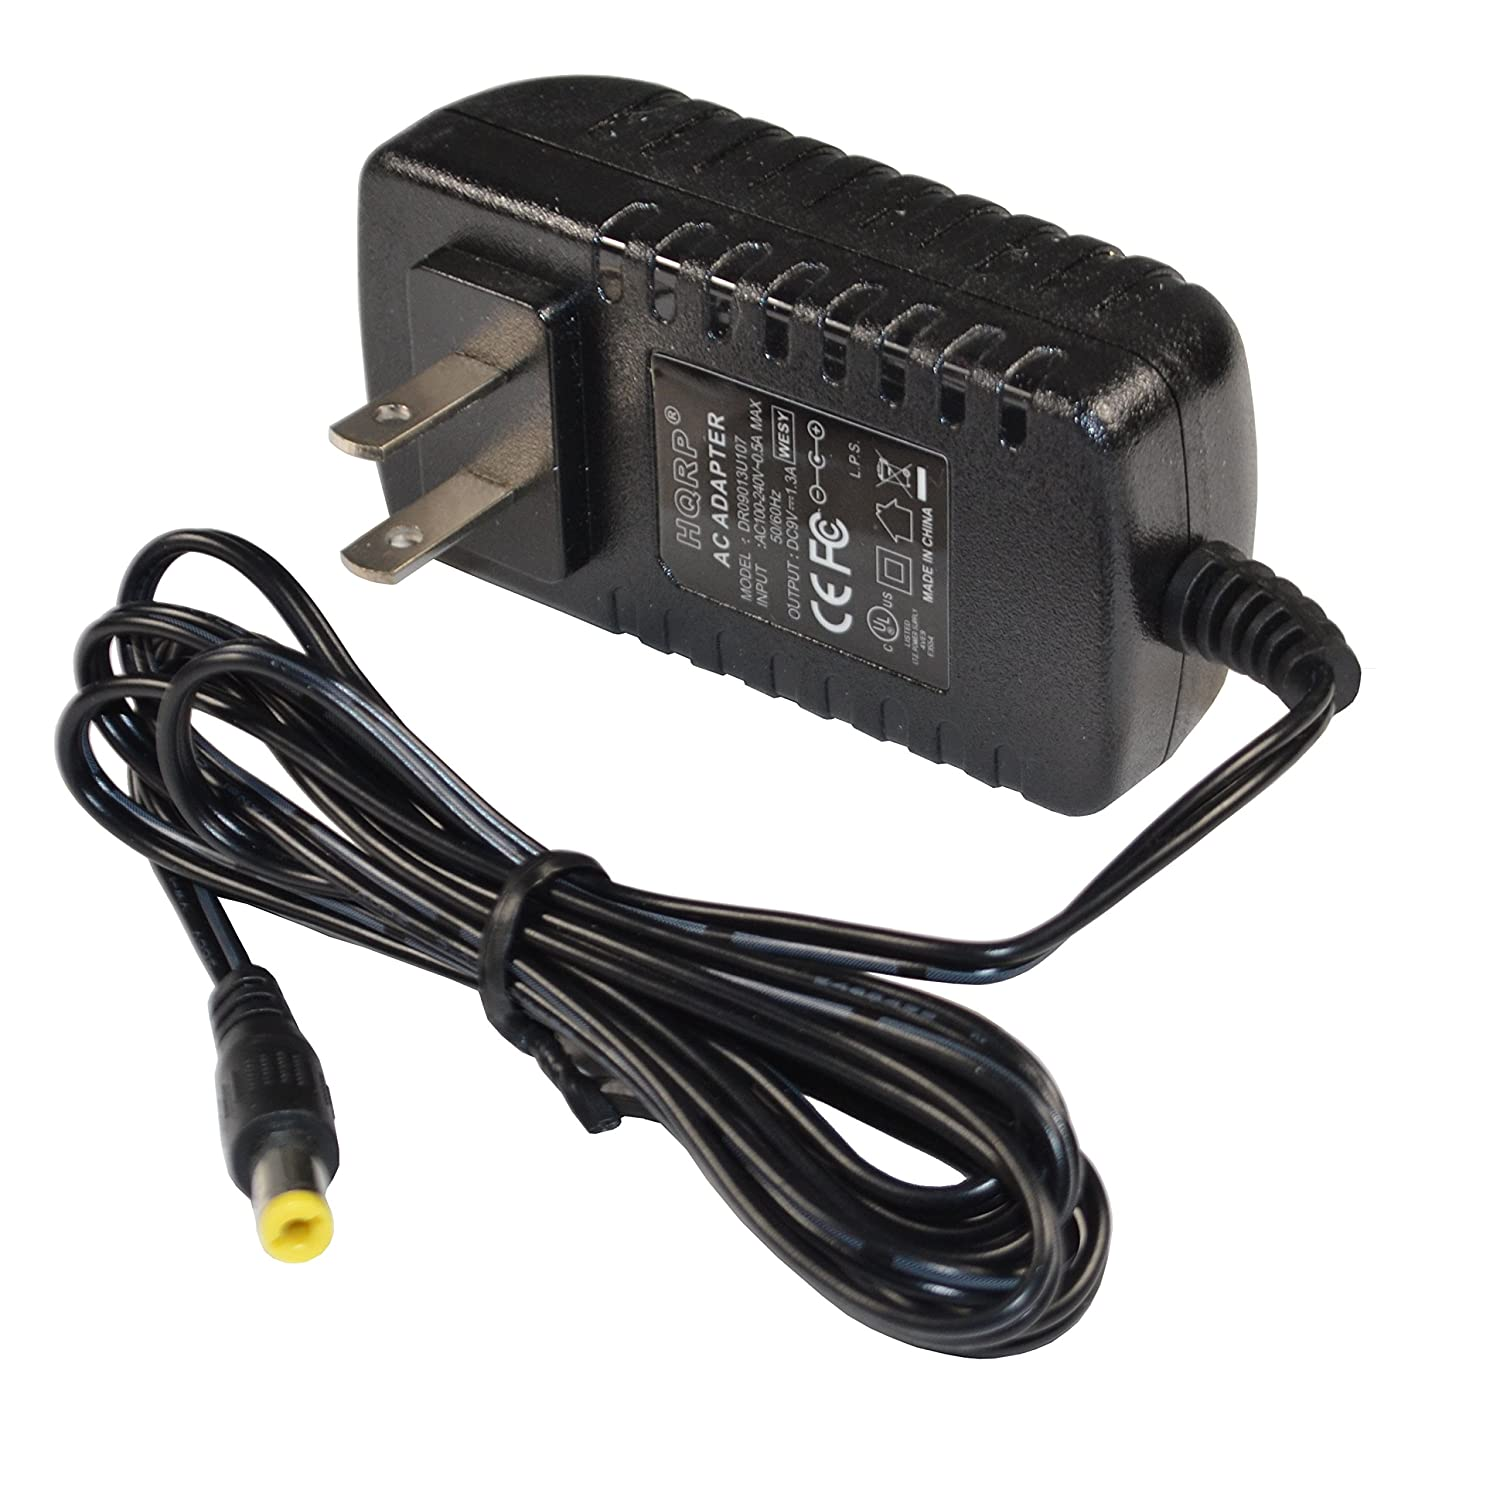 Hqrp 9v Ac Adapter For Rca Dta 800b1 Digital Tv 100 240v To Dc 1a Switching Power Supply Converter Eu Box Gt Wacl09000100 302 Cord Ul Listed Euro Plug Home Audio